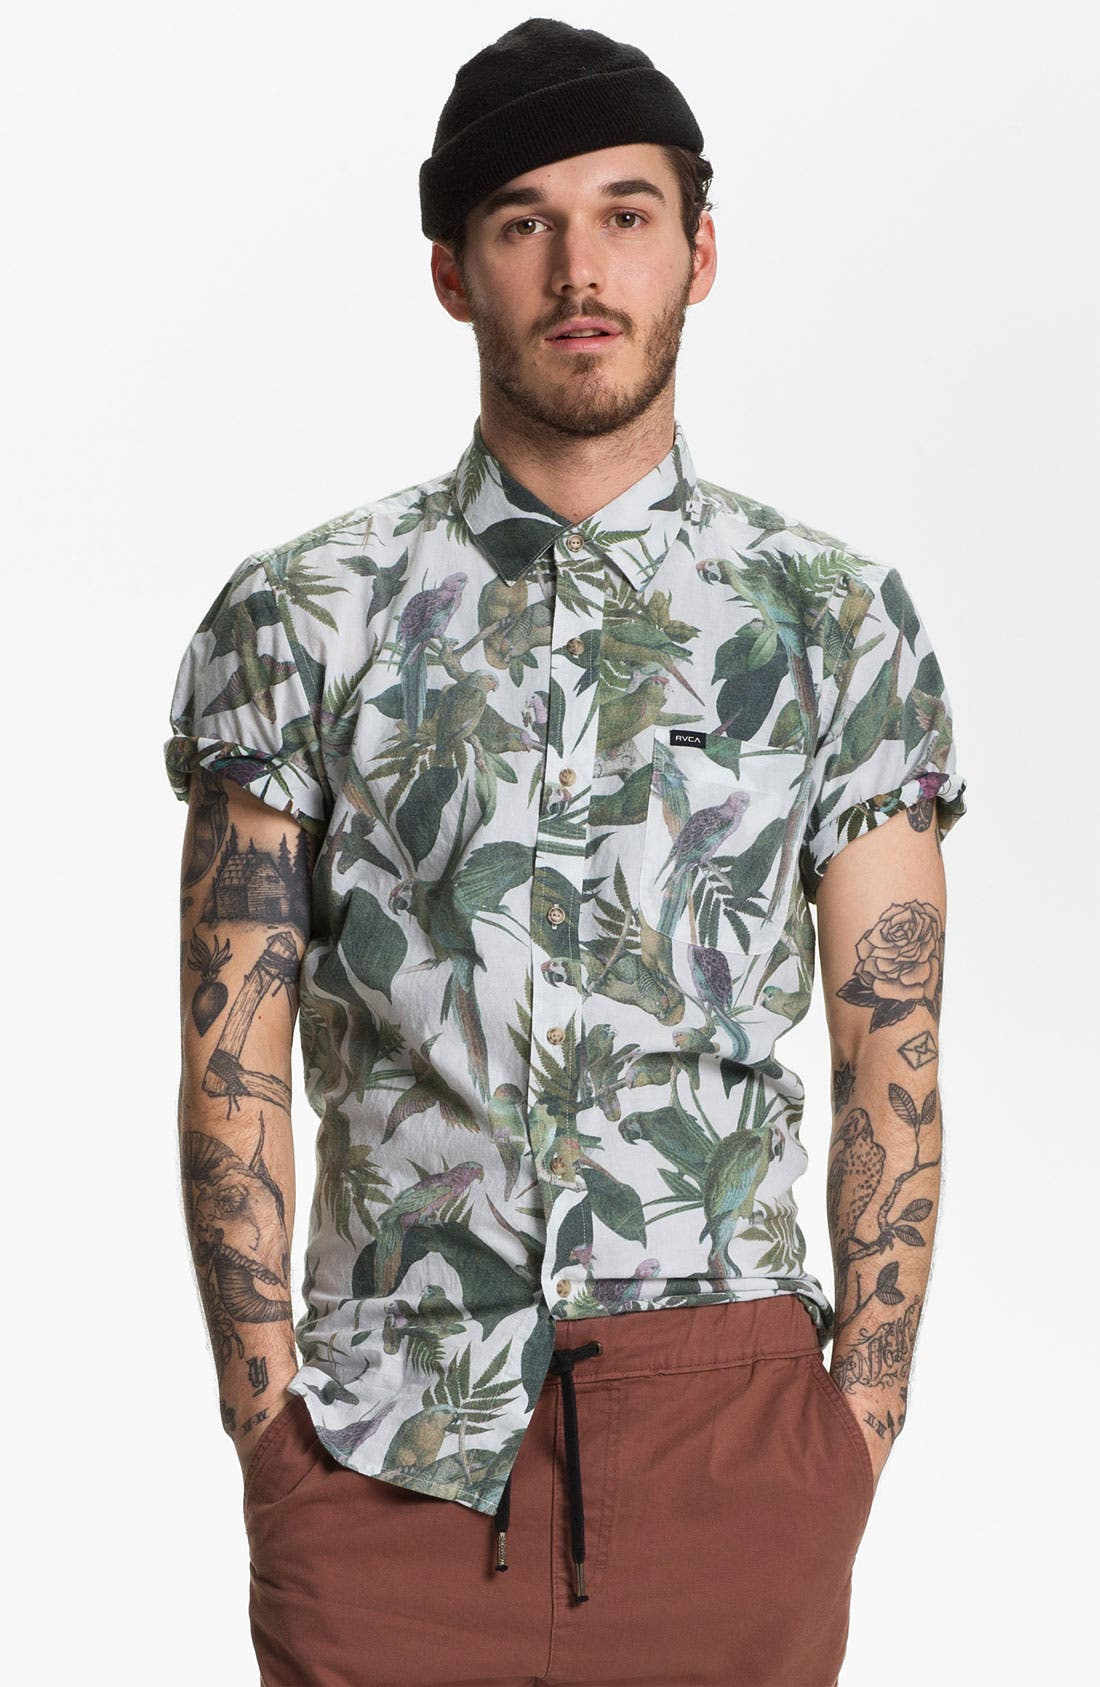 Alternate Image 1 Selected - RVCA 'Squawker' Print Woven Shirt